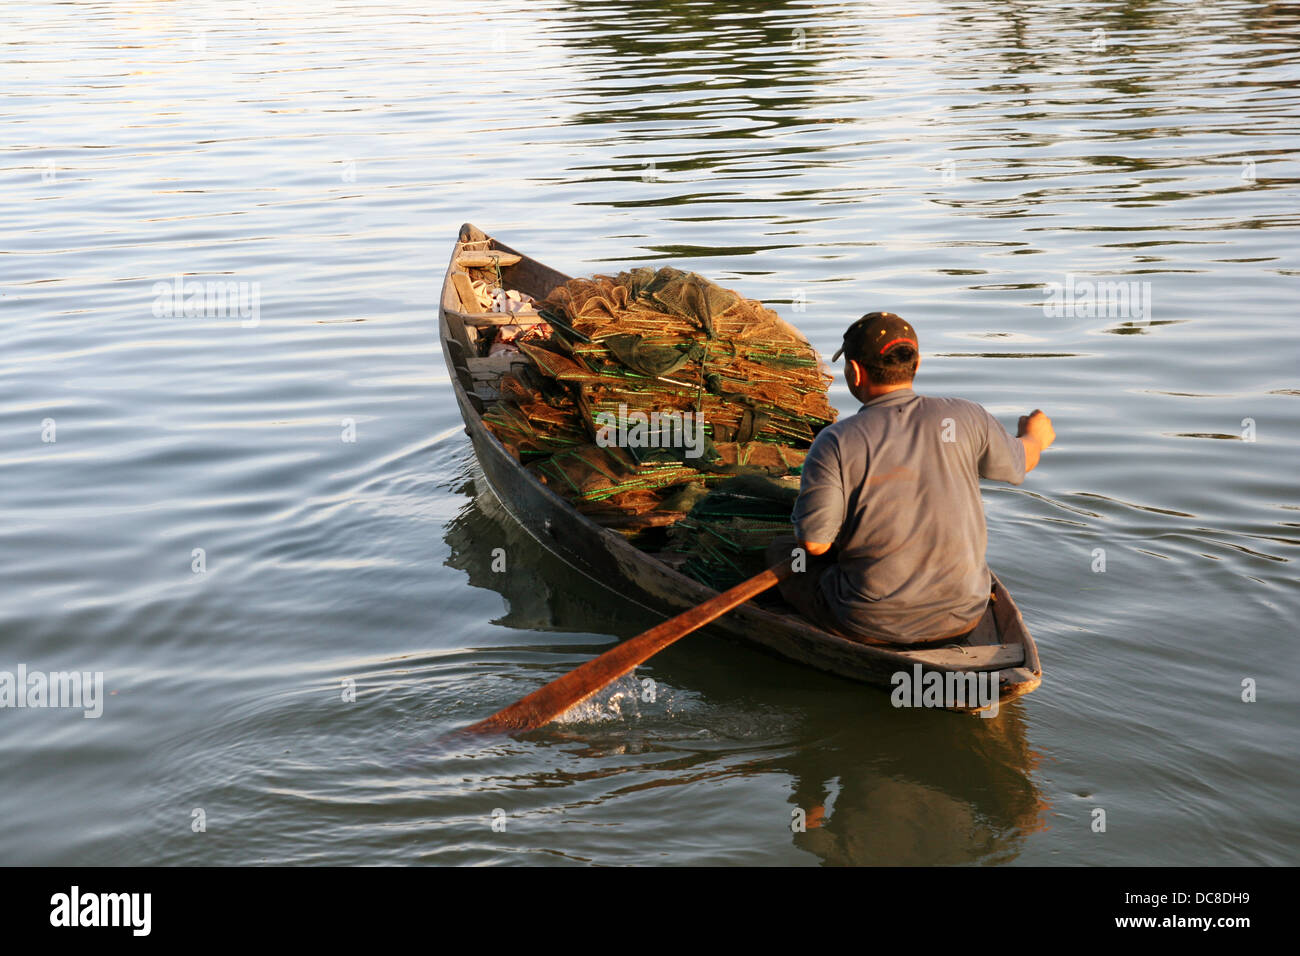 Fisher man in Hoi An, Vietnam - Stock Image